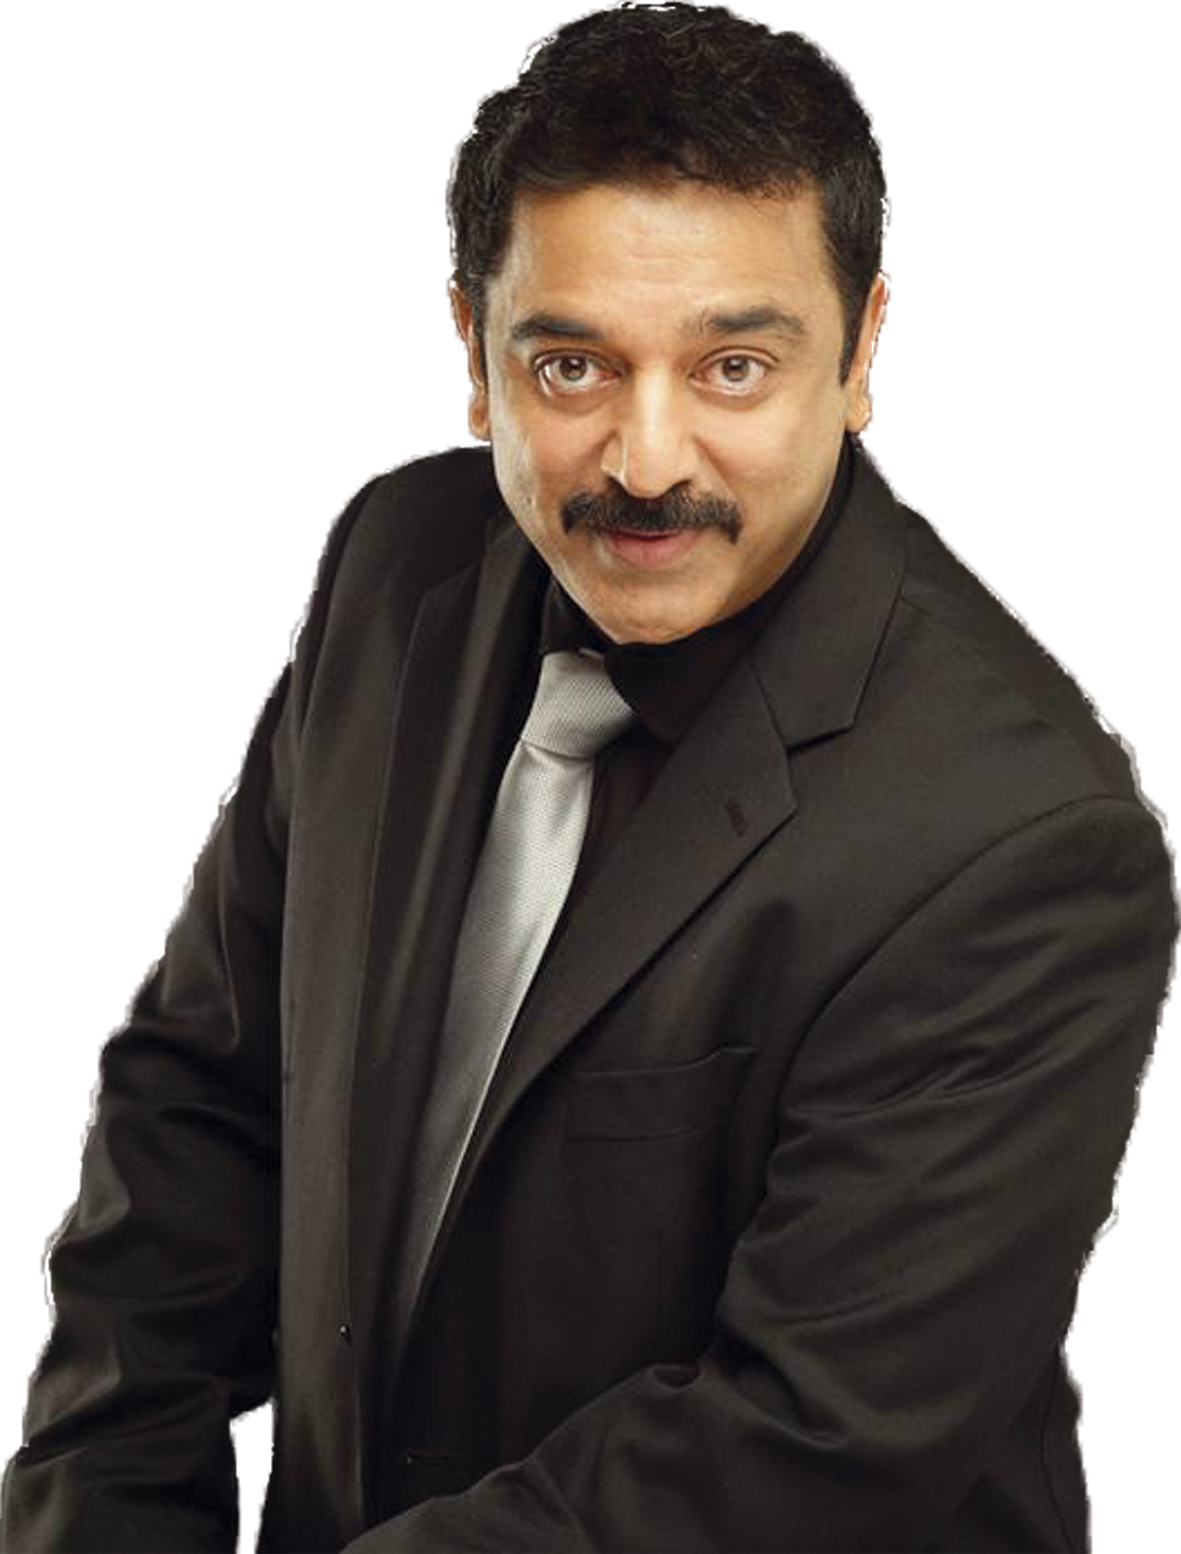 kamal haasan familykamal haasan height, kamal haasan films, kamal haasan twitter, kamal haasan, kamal haasan wiki, kamal haasan daughters, kamal haasan movie list, kamal hassan movies list, kamal hassan daughter akshara haasan, kamal haasan biography, kamal haasan wife, kamal haasan film list, kamal hassan movie list wiki, kamal haasan movies, kamal haasan facebook, kamal haasan songs, kamal haasan real name, kamal haasan family, kamal haasan quotes, kamal haasan birthday